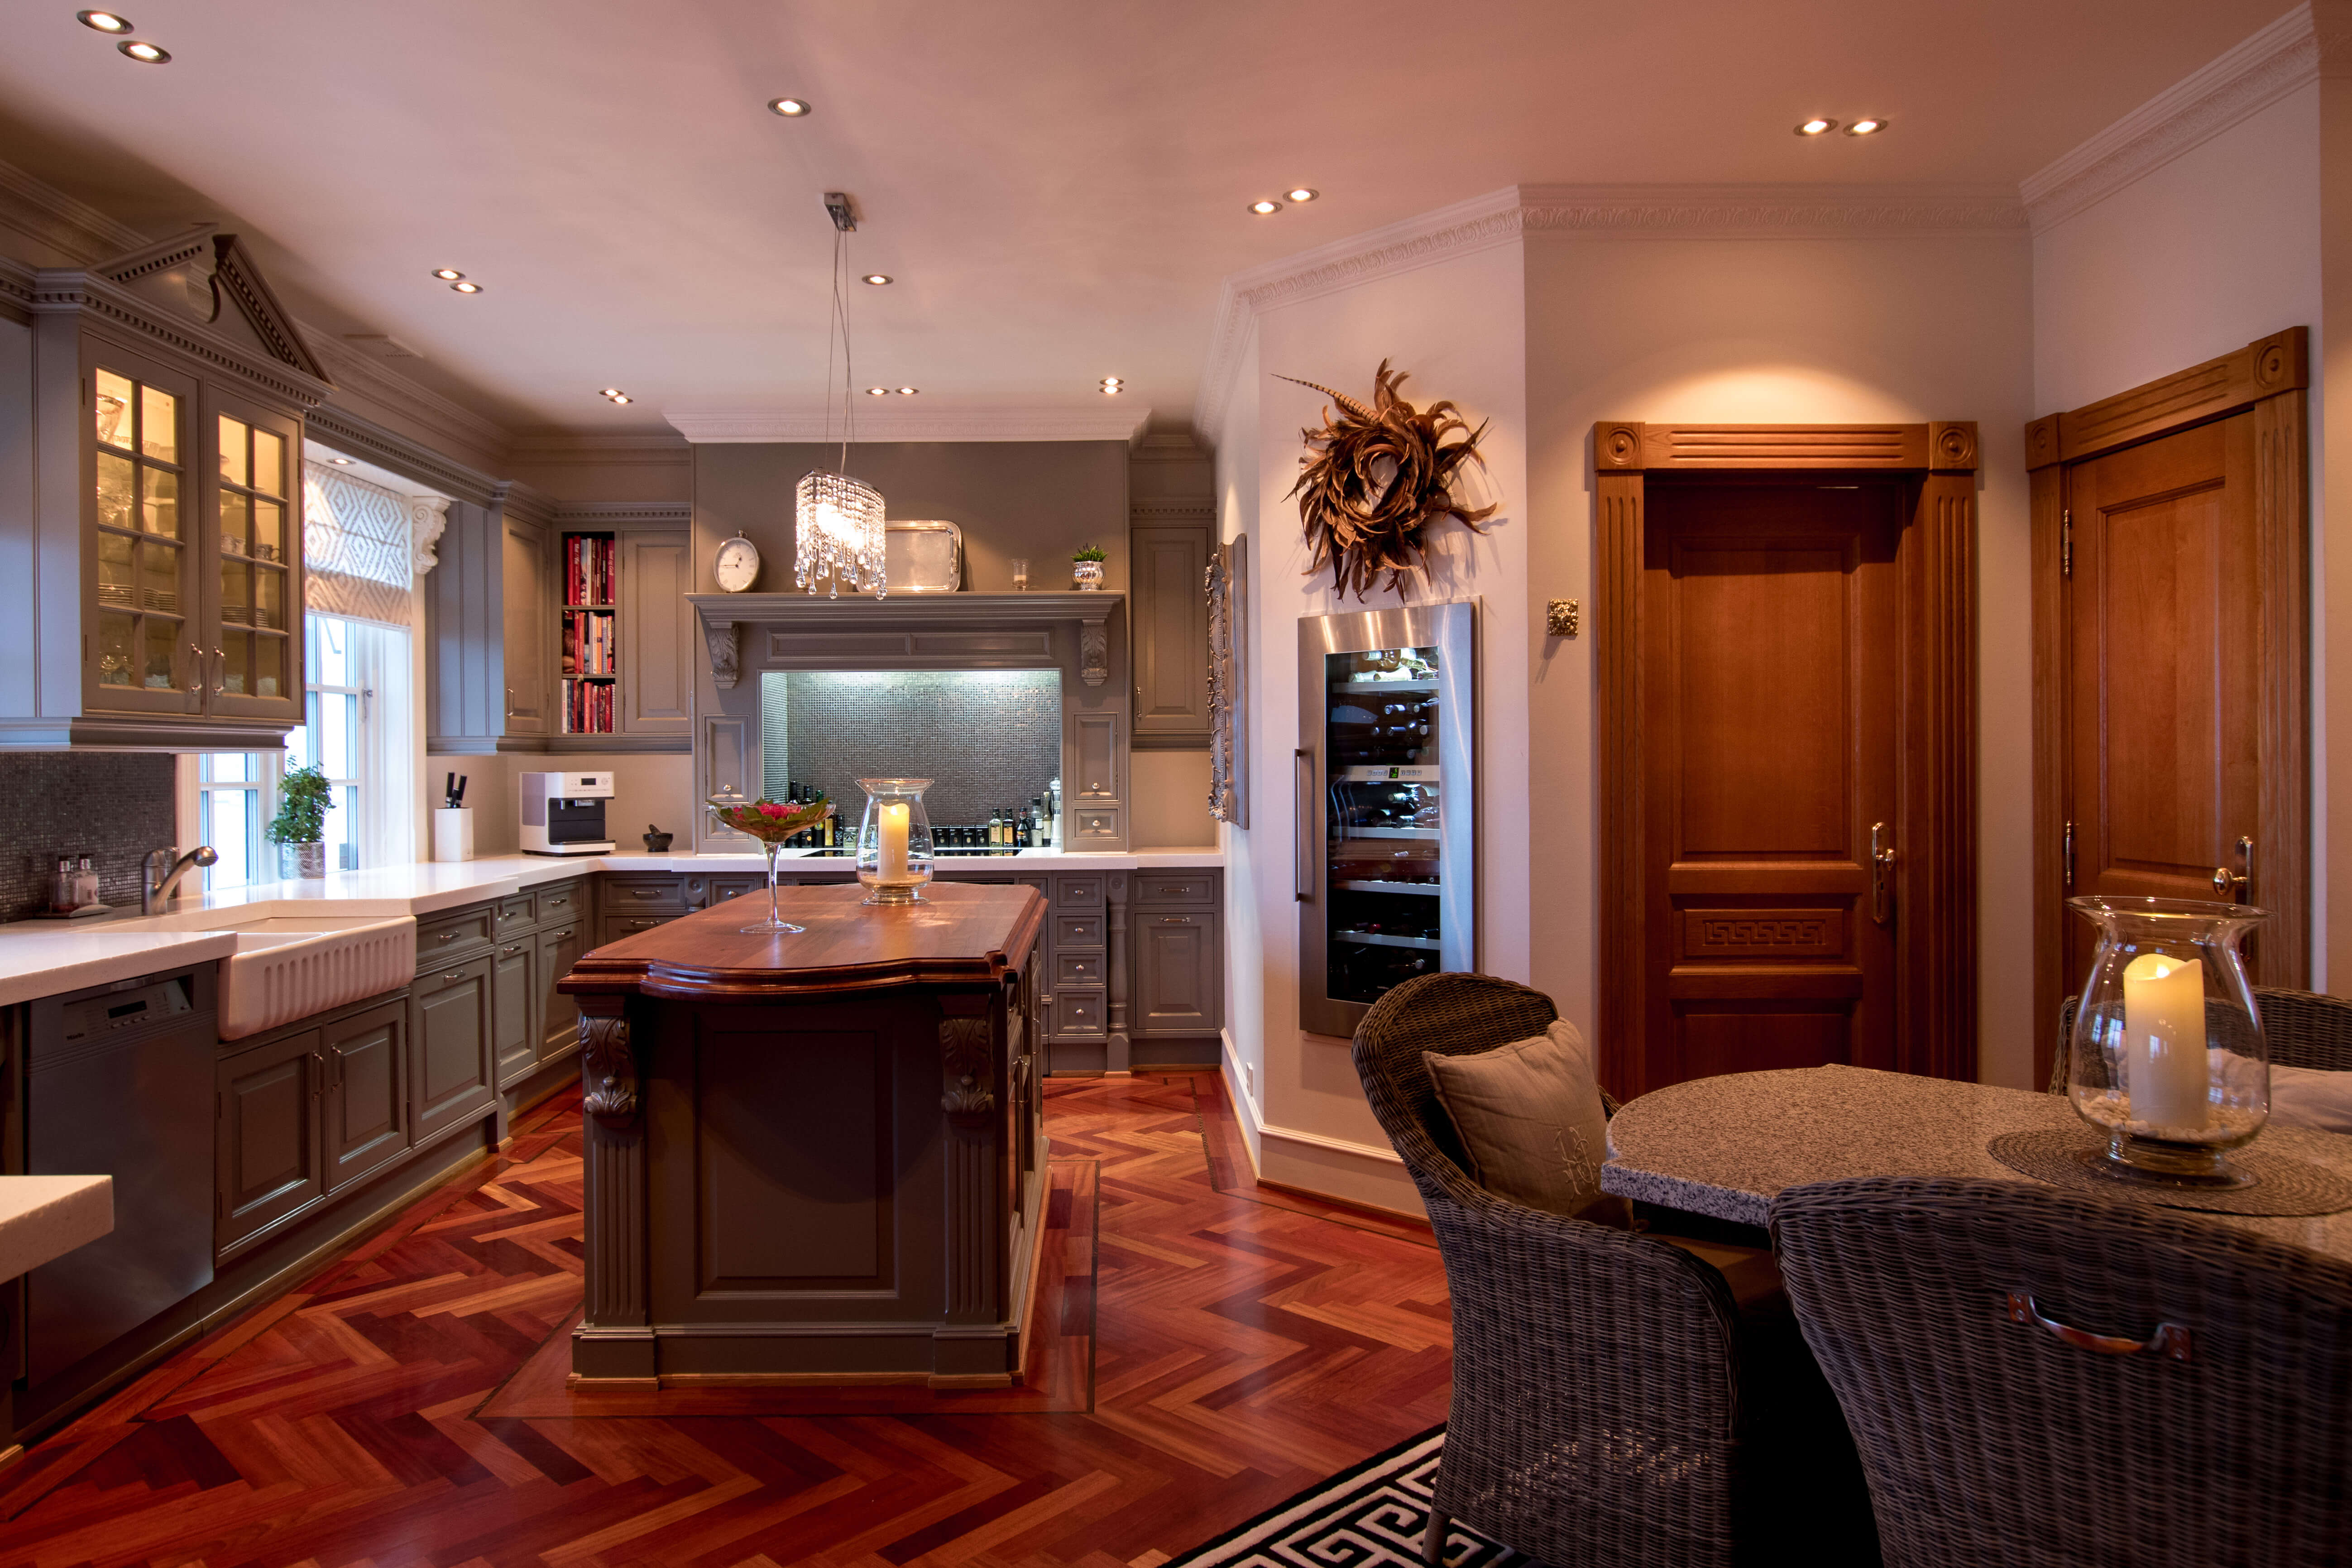 Functional and inviting kitchen.